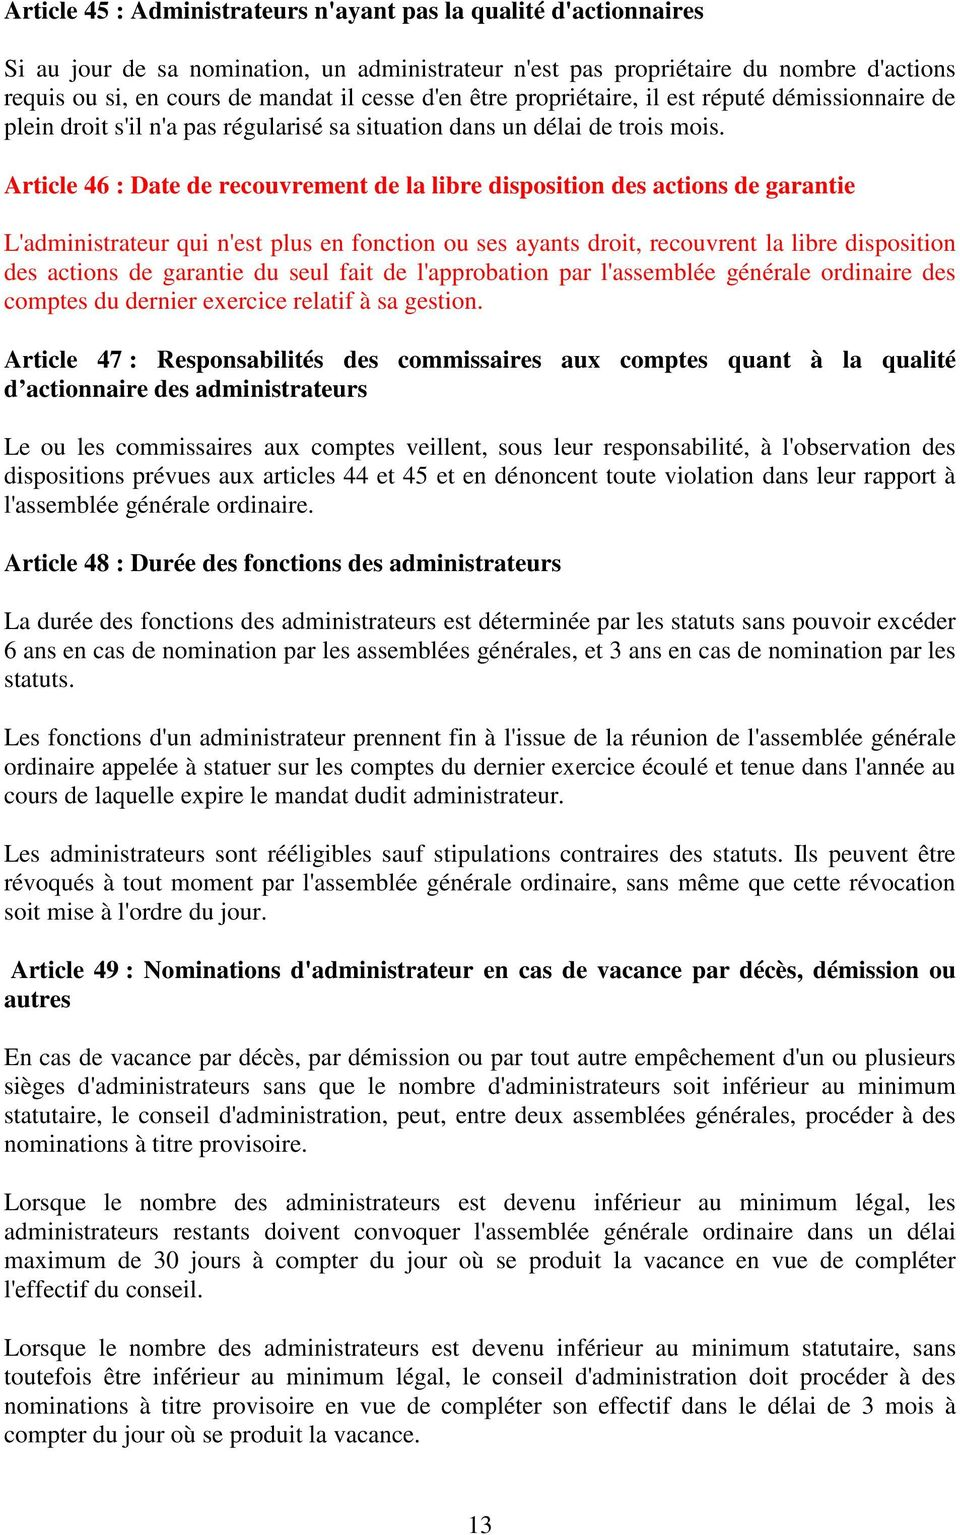 Article 46 : Date de recouvrement de la libre disposition des actions de garantie L'administrateur qui n'est plus en fonction ou ses ayants droit, recouvrent la libre disposition des actions de